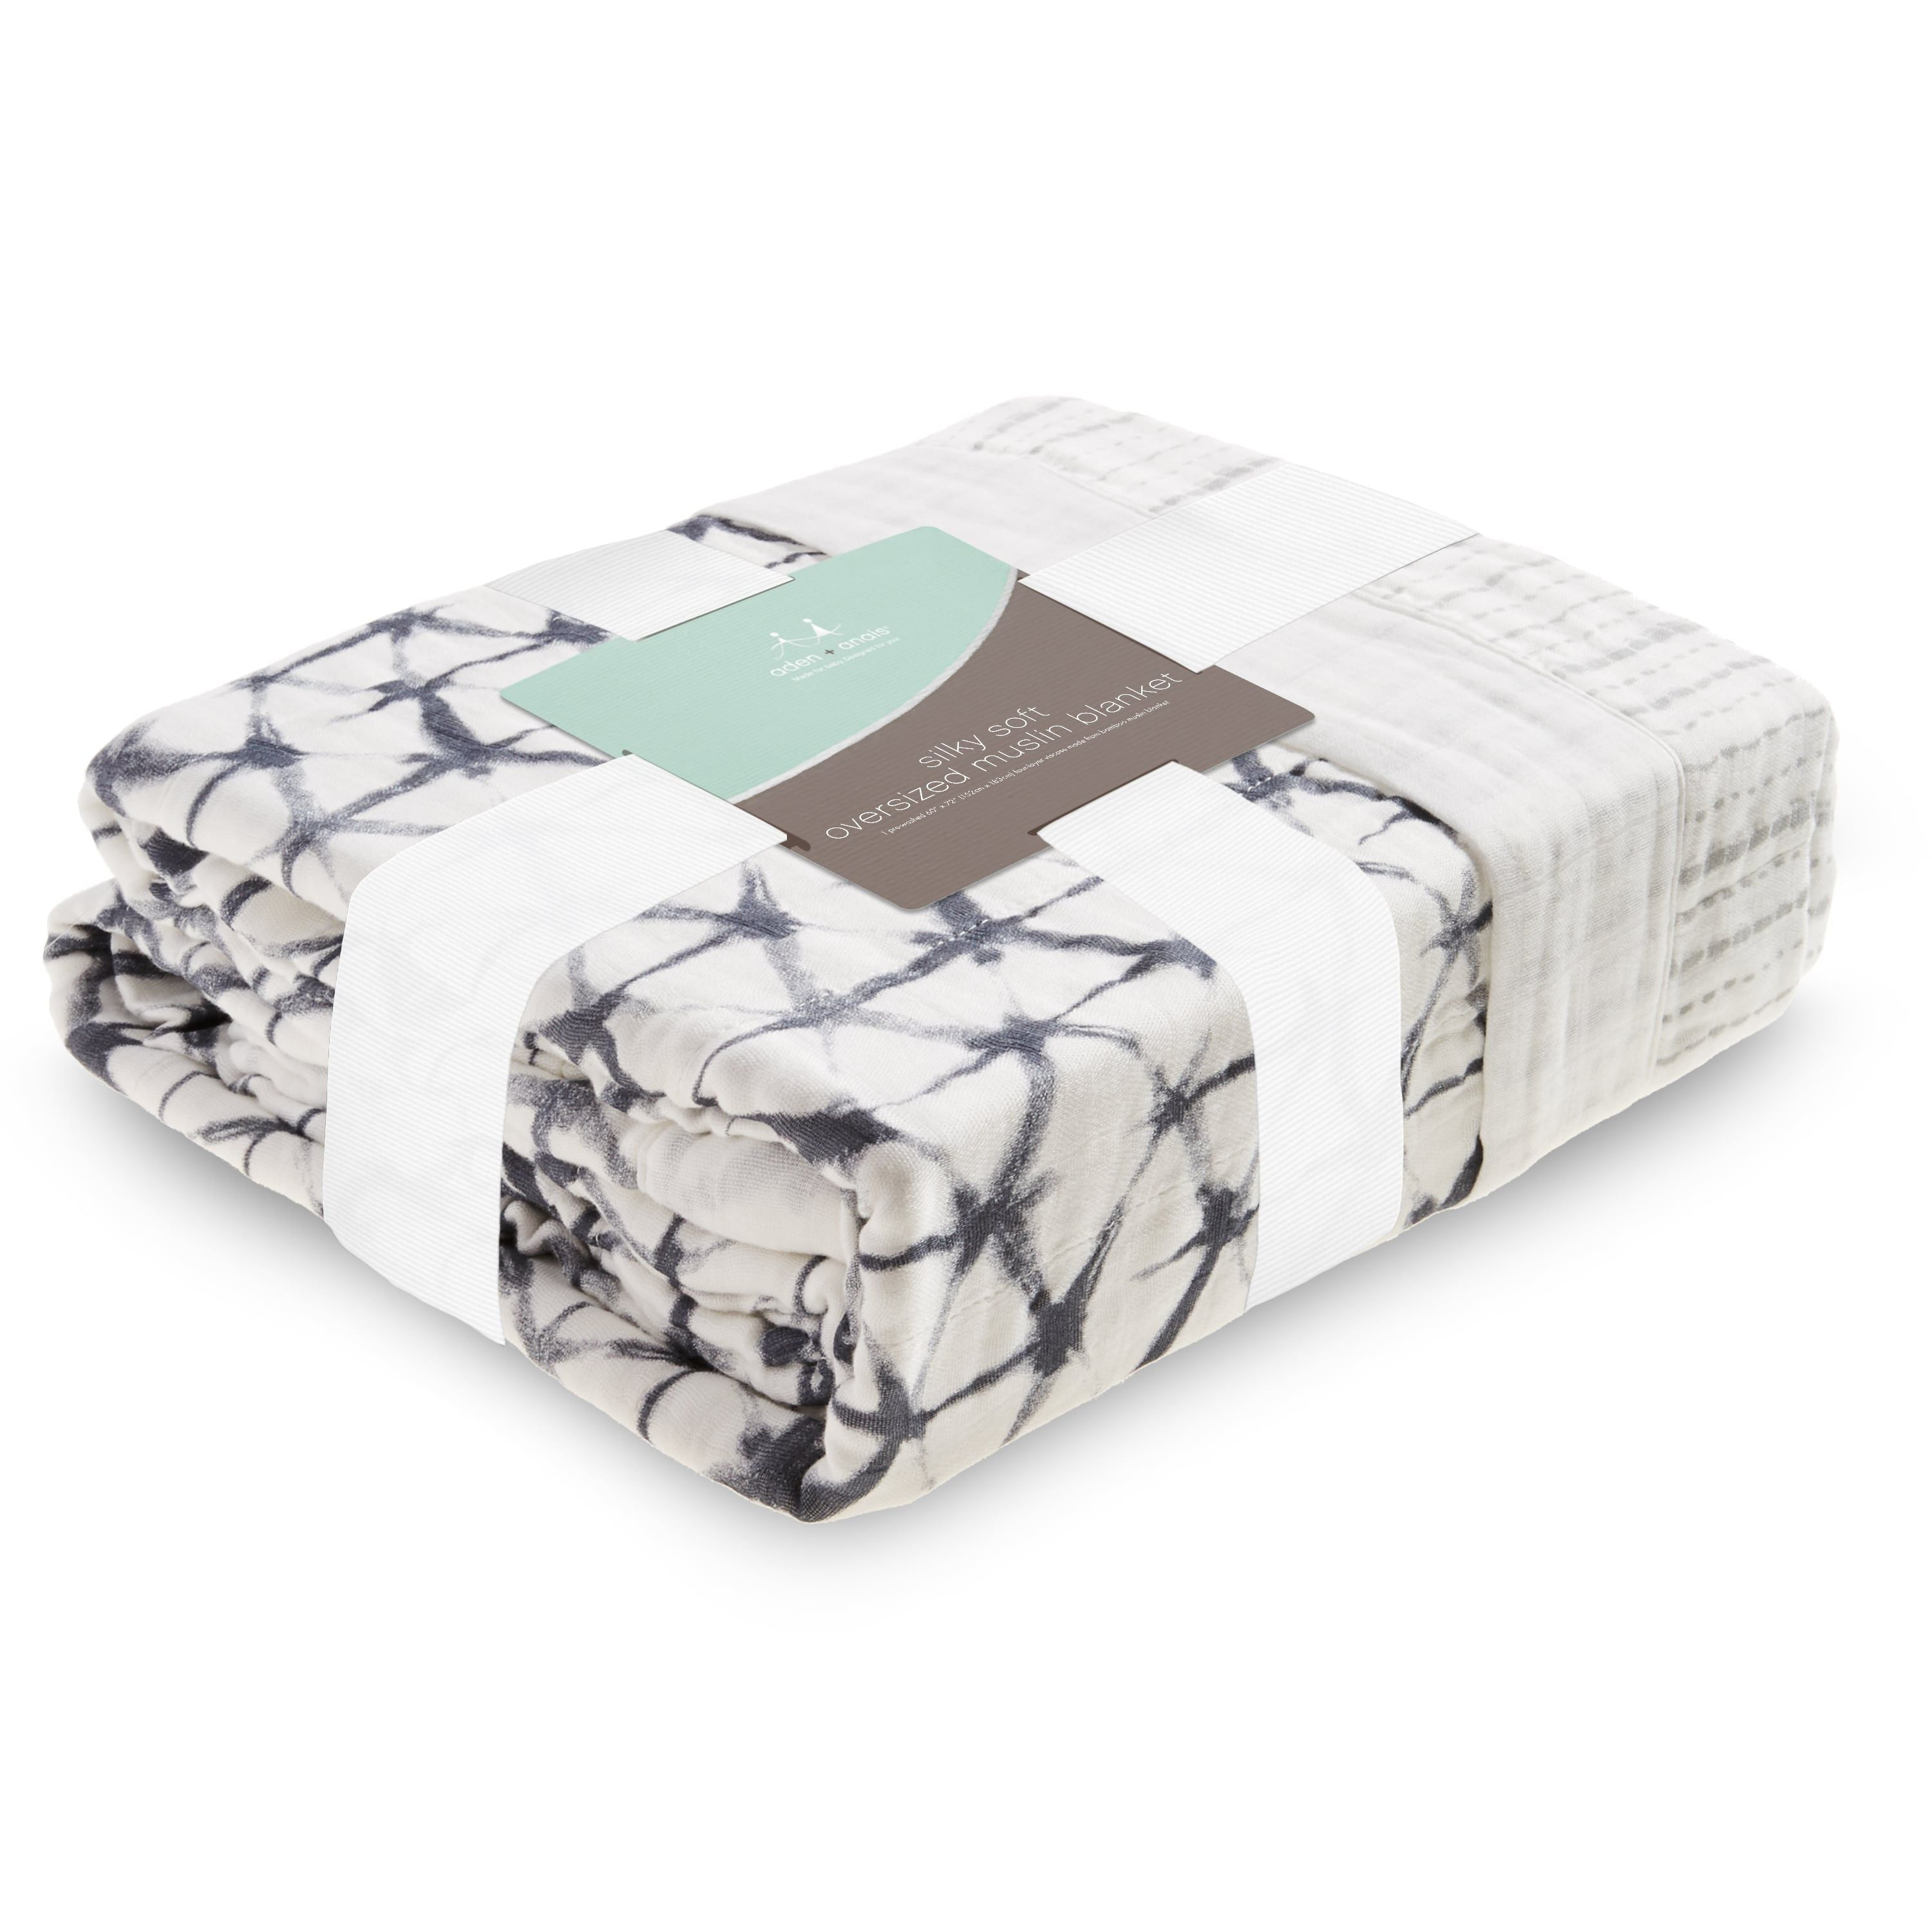 Aden /& Anais Oversized Silky Soft Muslin Baby Blanket Seaport-Fans NEW